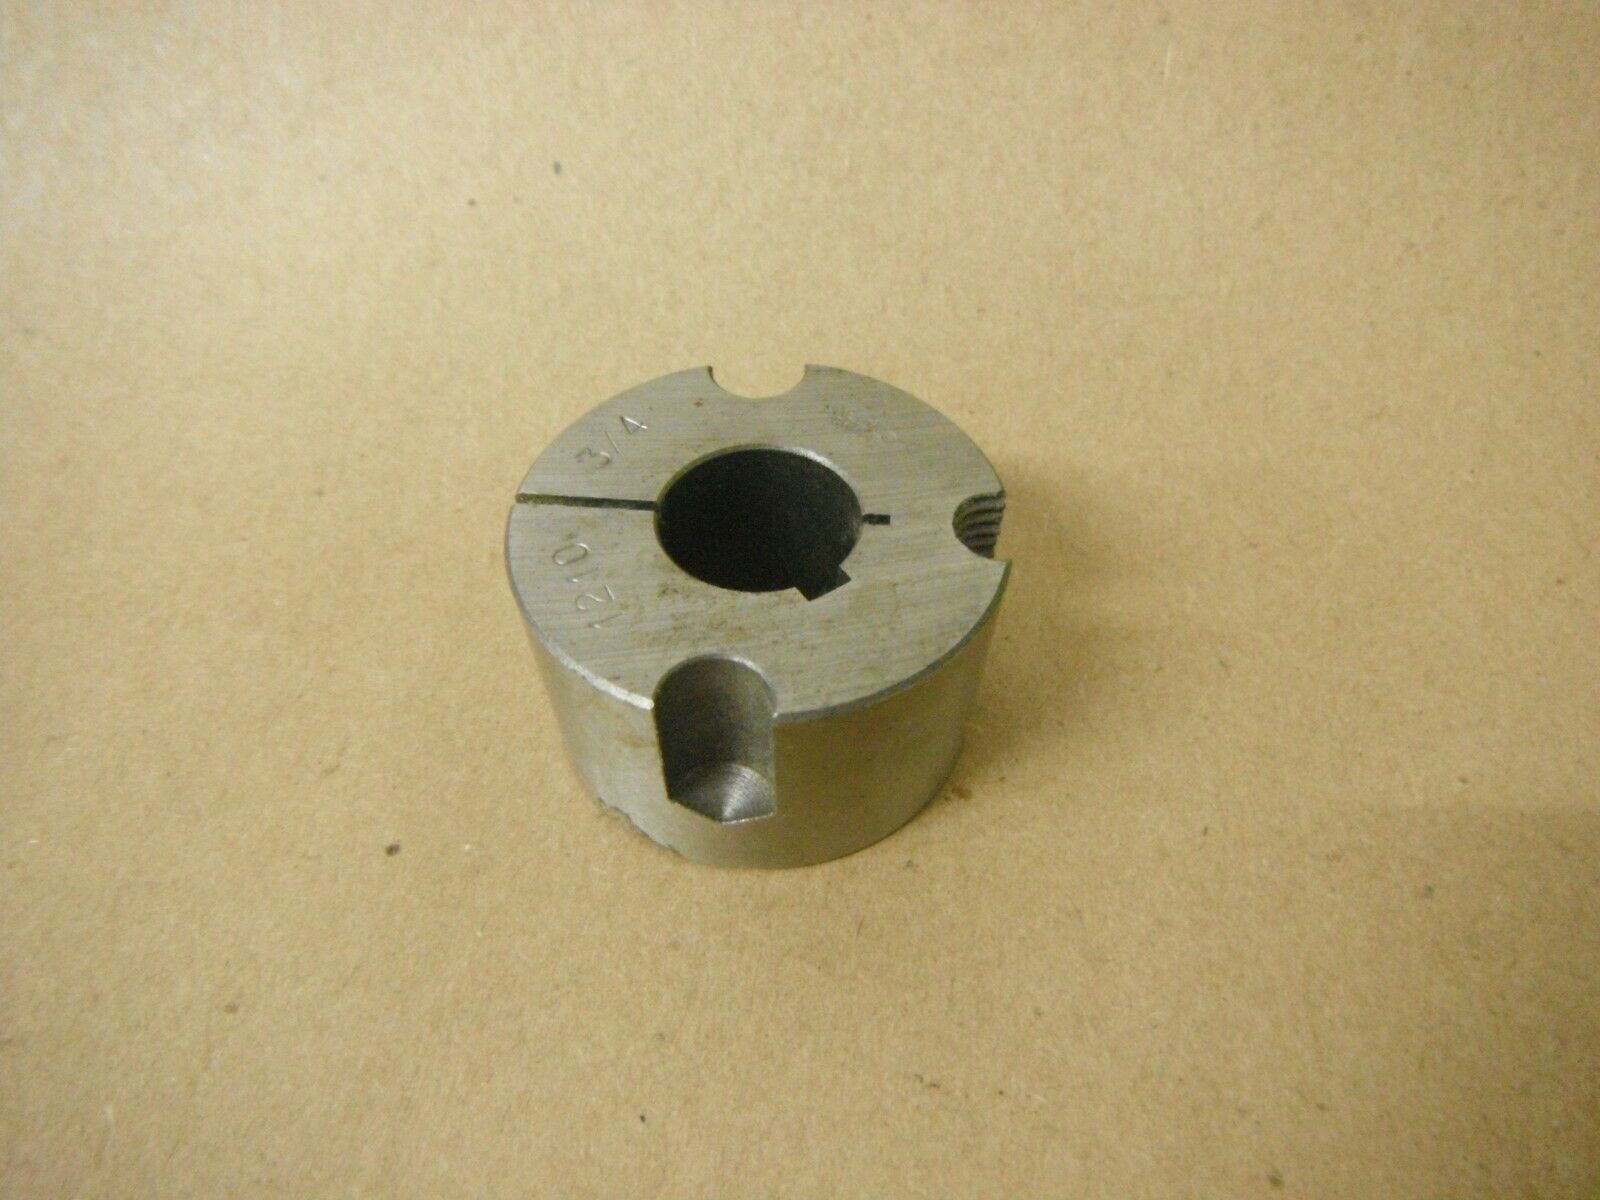 Primary image for 1210 3/4 TAPERED BUSHING MISSING HARDWARE